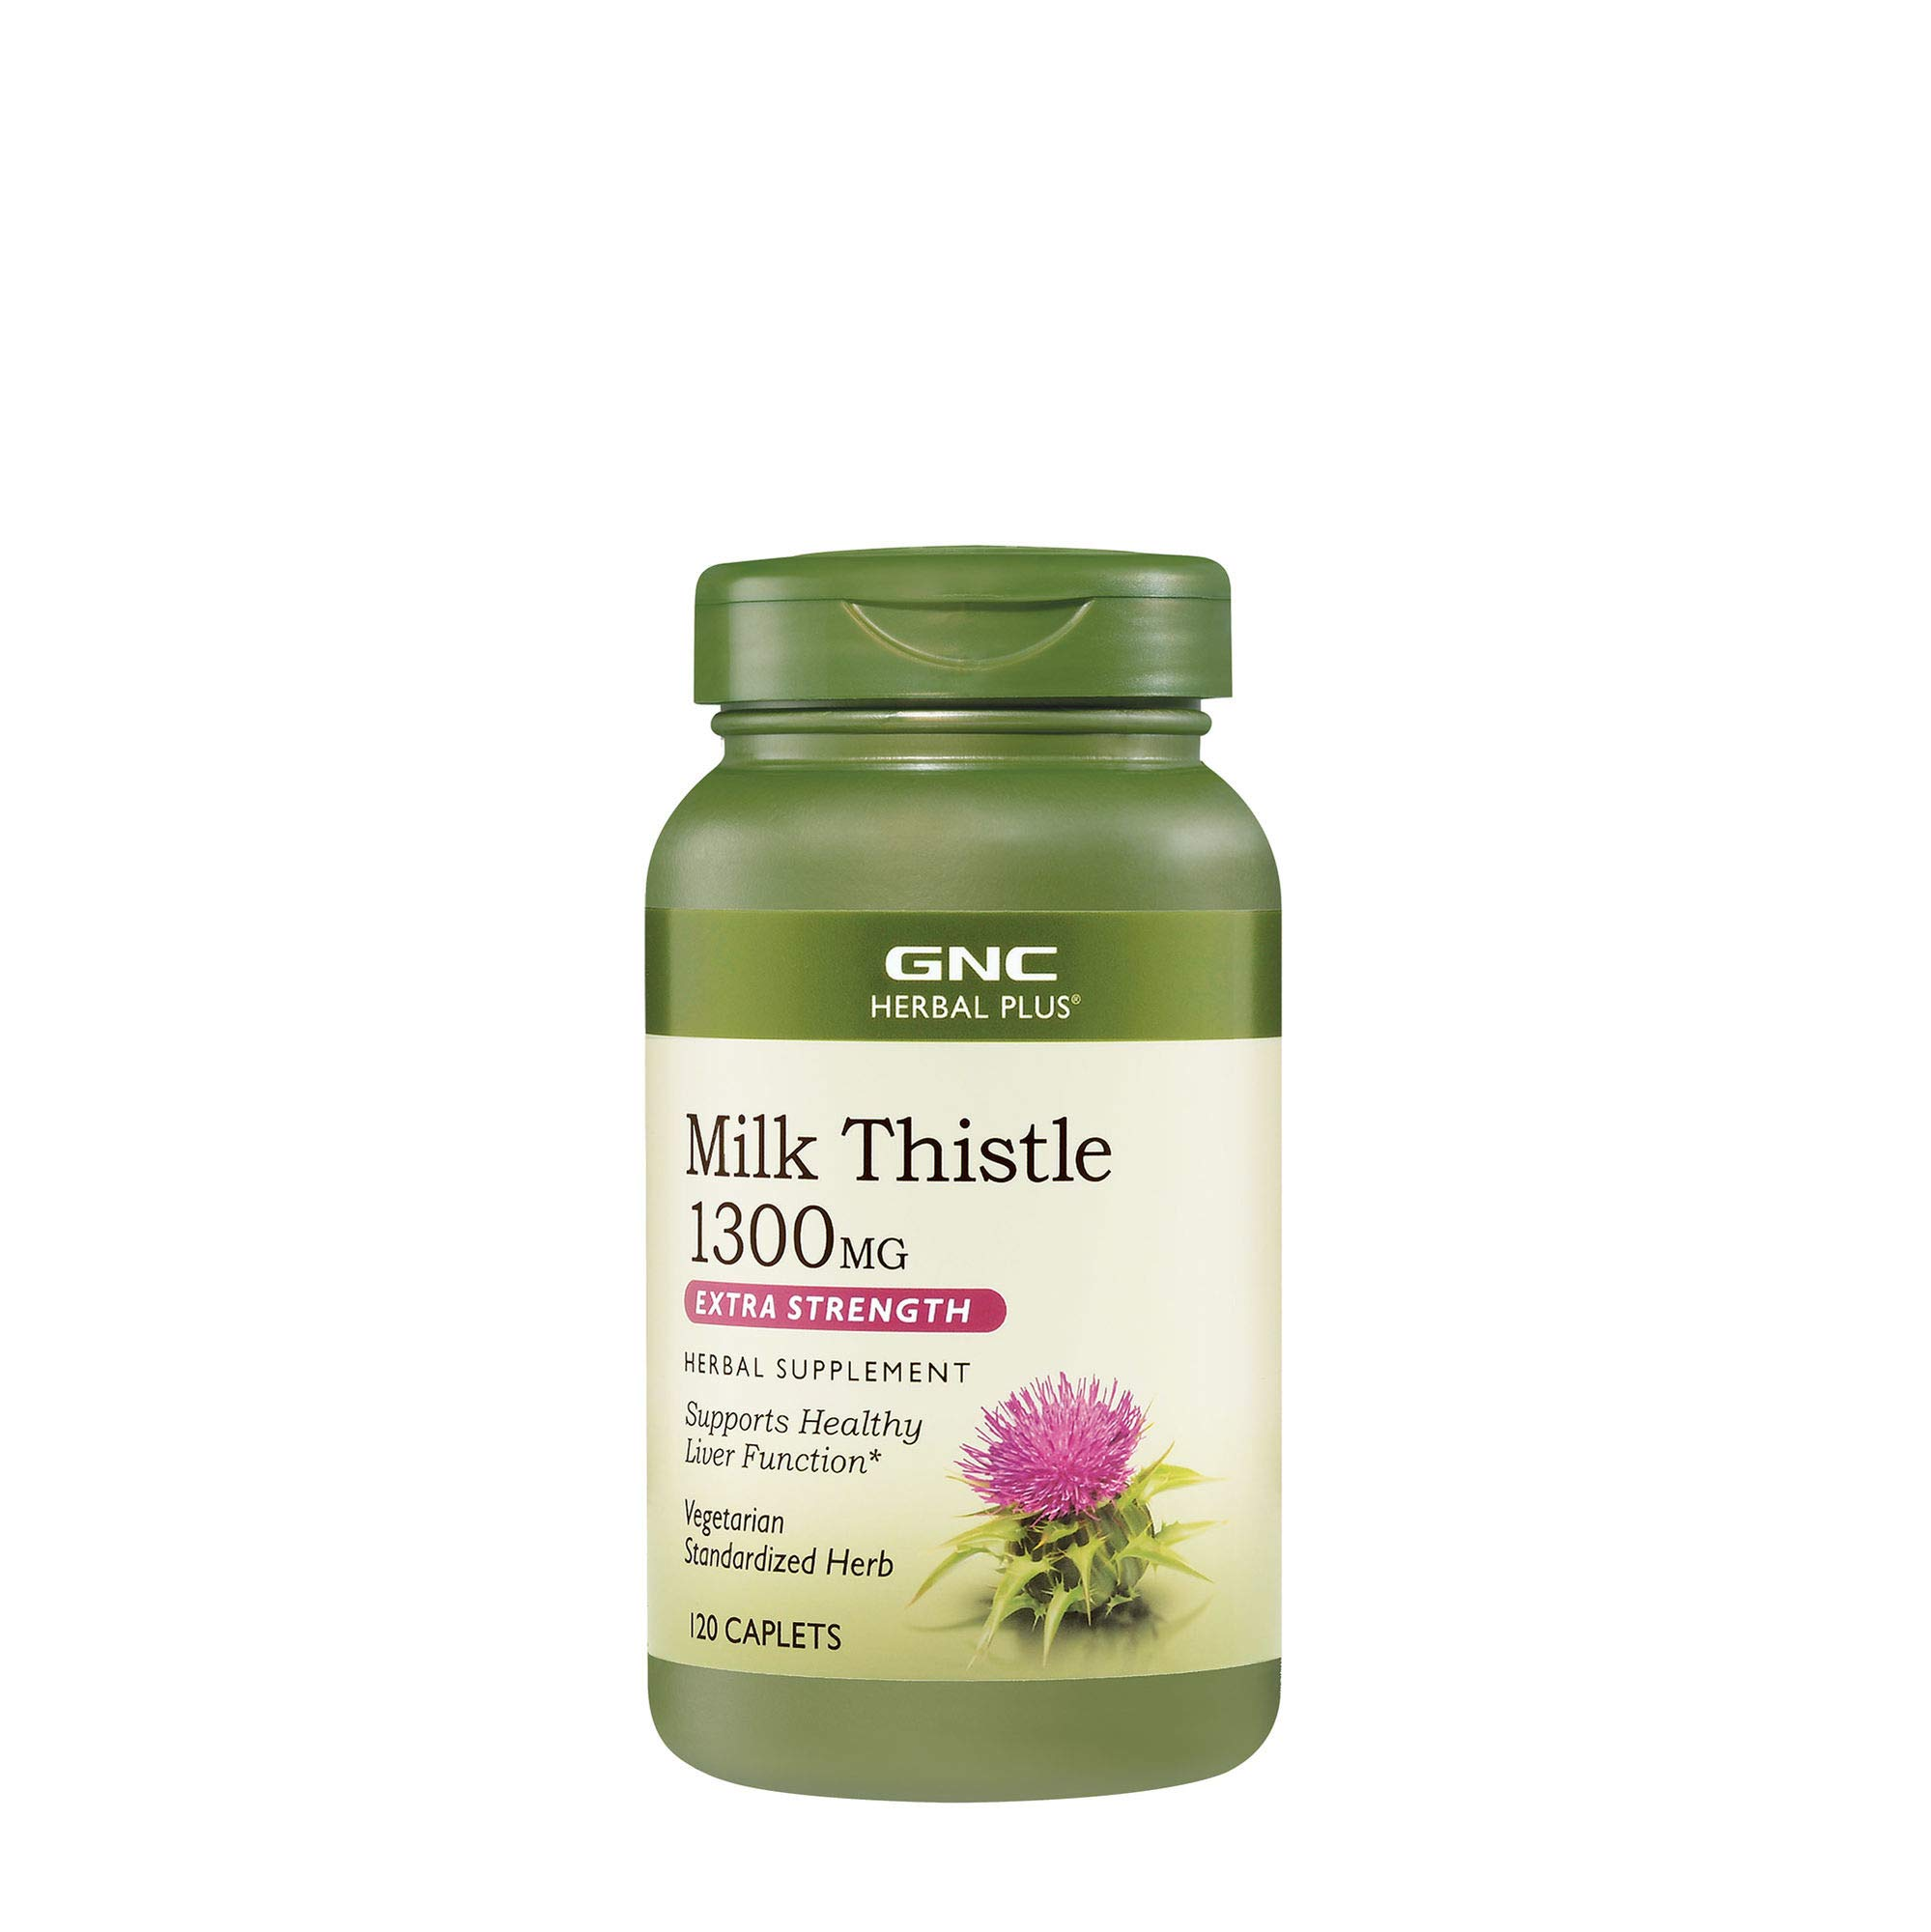 GNC Herbal Plus Milk Thistle 1300mg, 120 Caplets, Healthy Liver Function